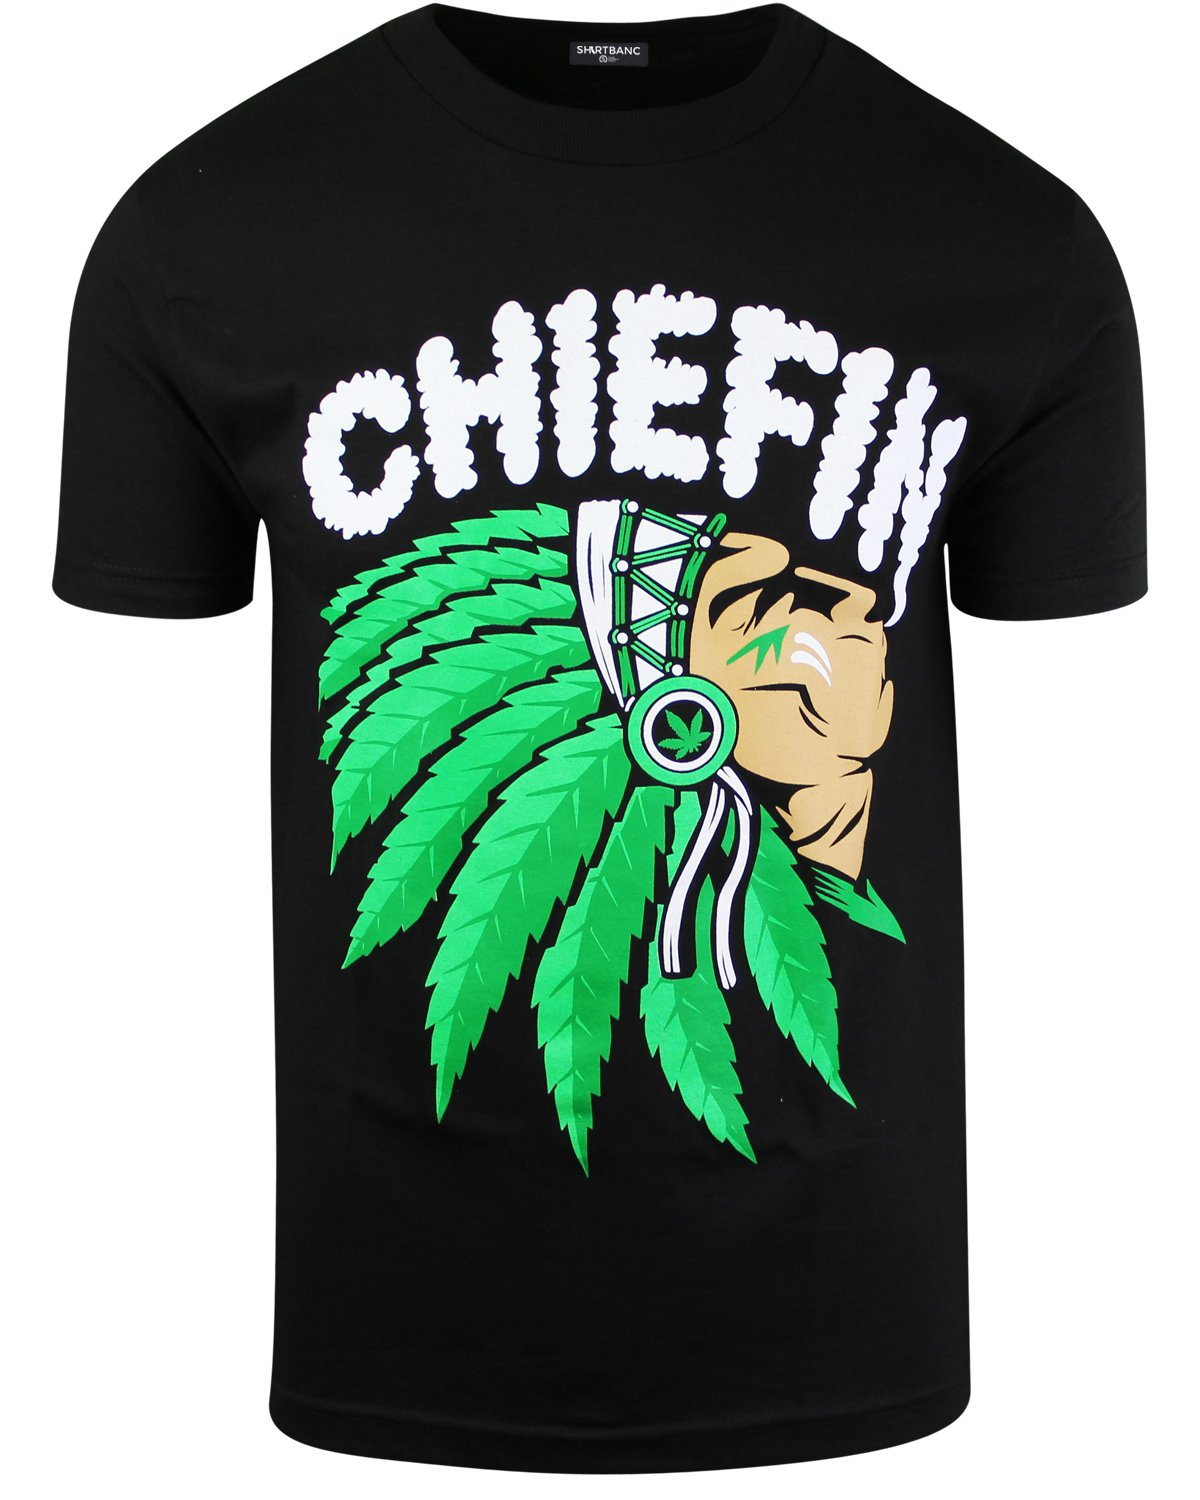 ShirtBANC Chiefn Smoke Mens Weed Shirt Native American Tee